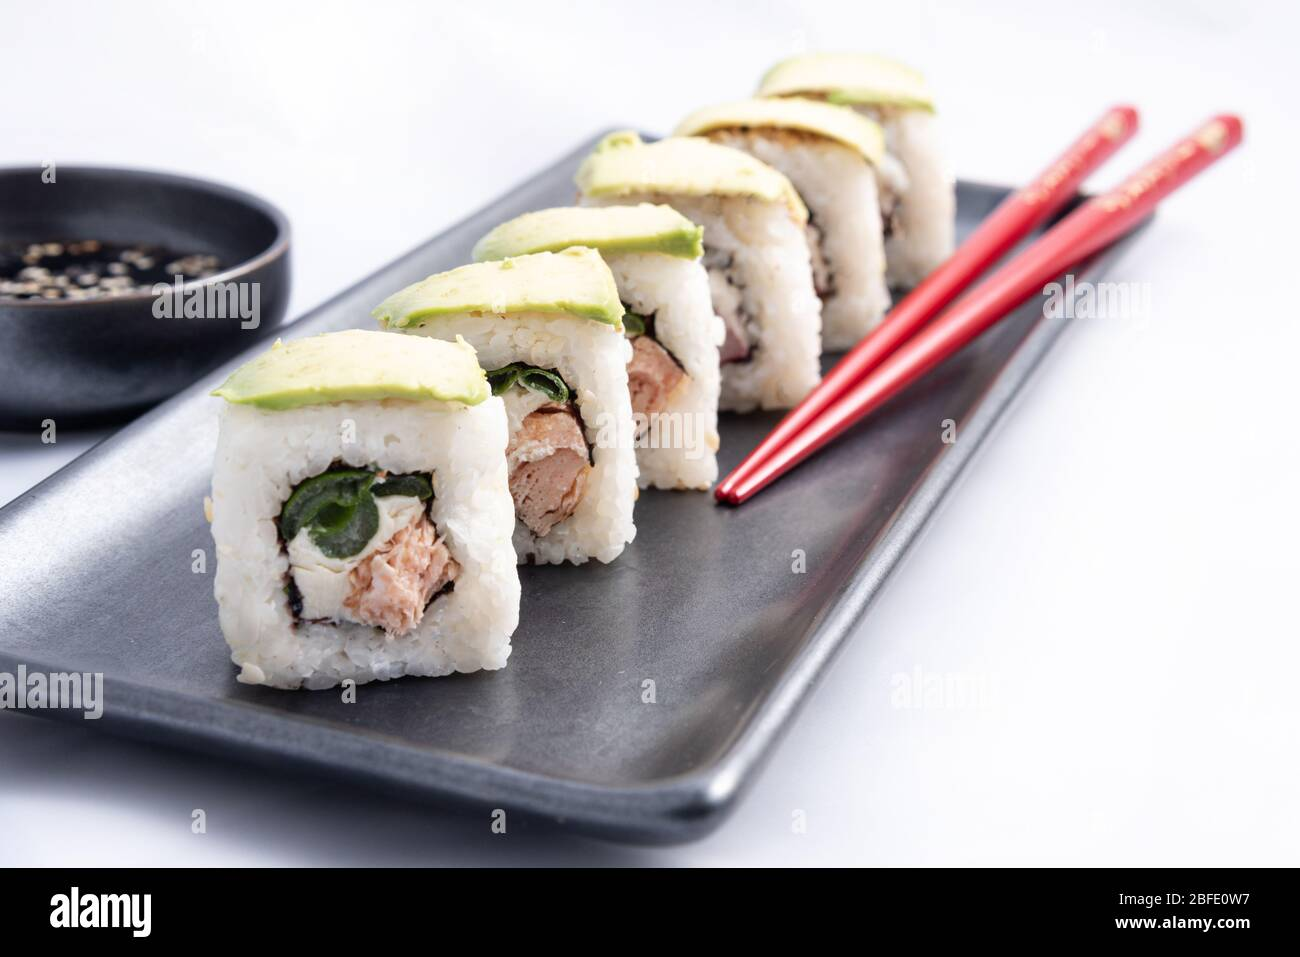 Sushi Roll With Avocado Wrap Grilled Salmon Philadelphia Cheese And Green Onions Black Container And Red Chopsticks Stock Photo Alamy